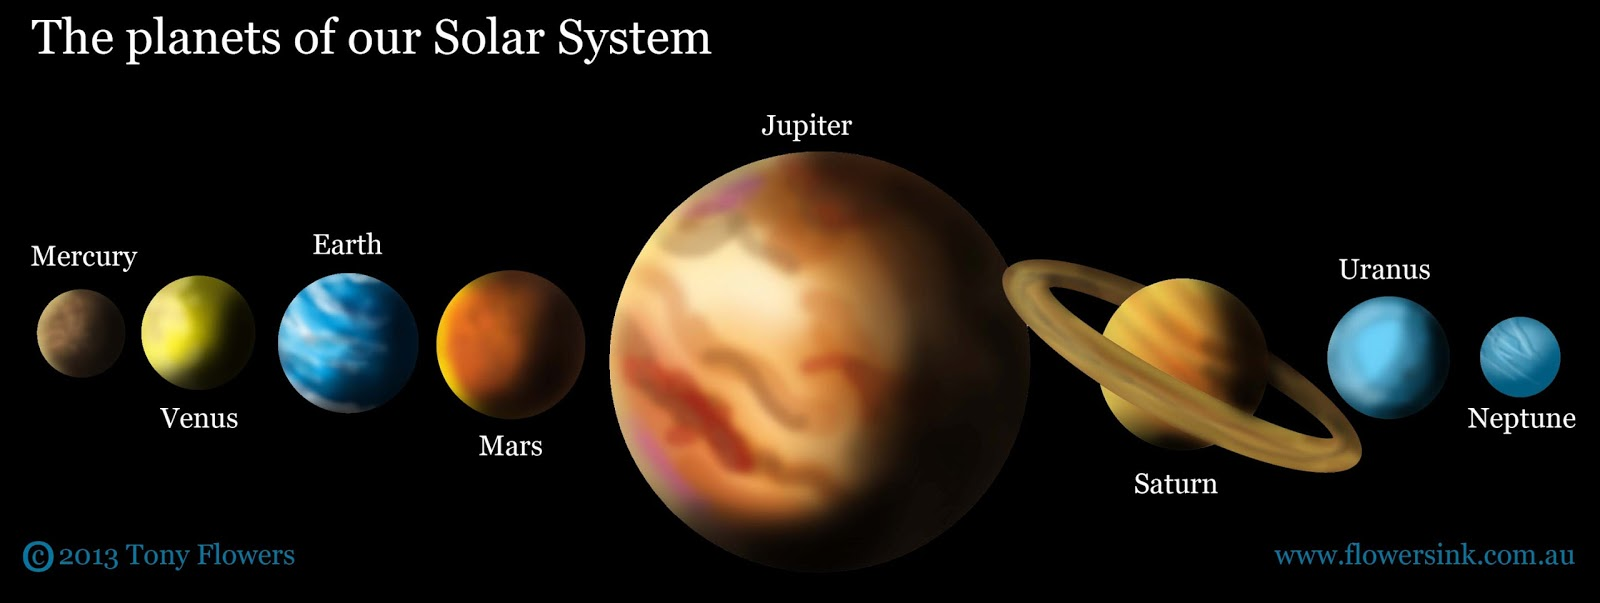 solar system order of planets - photo #7